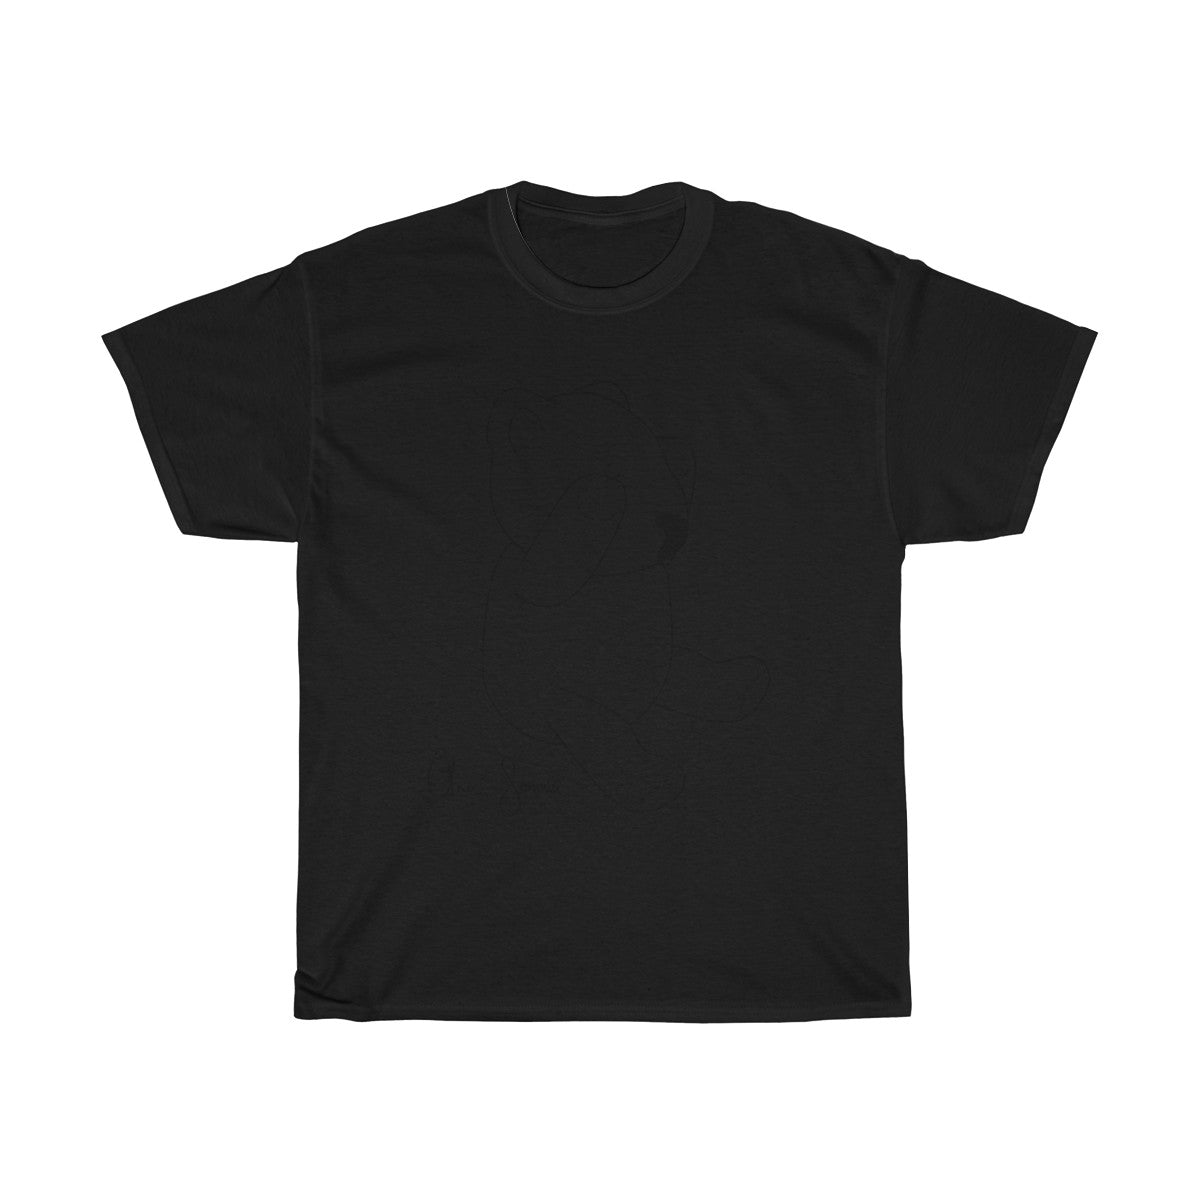 Unisex Heavy Cotton Tee Black Motive